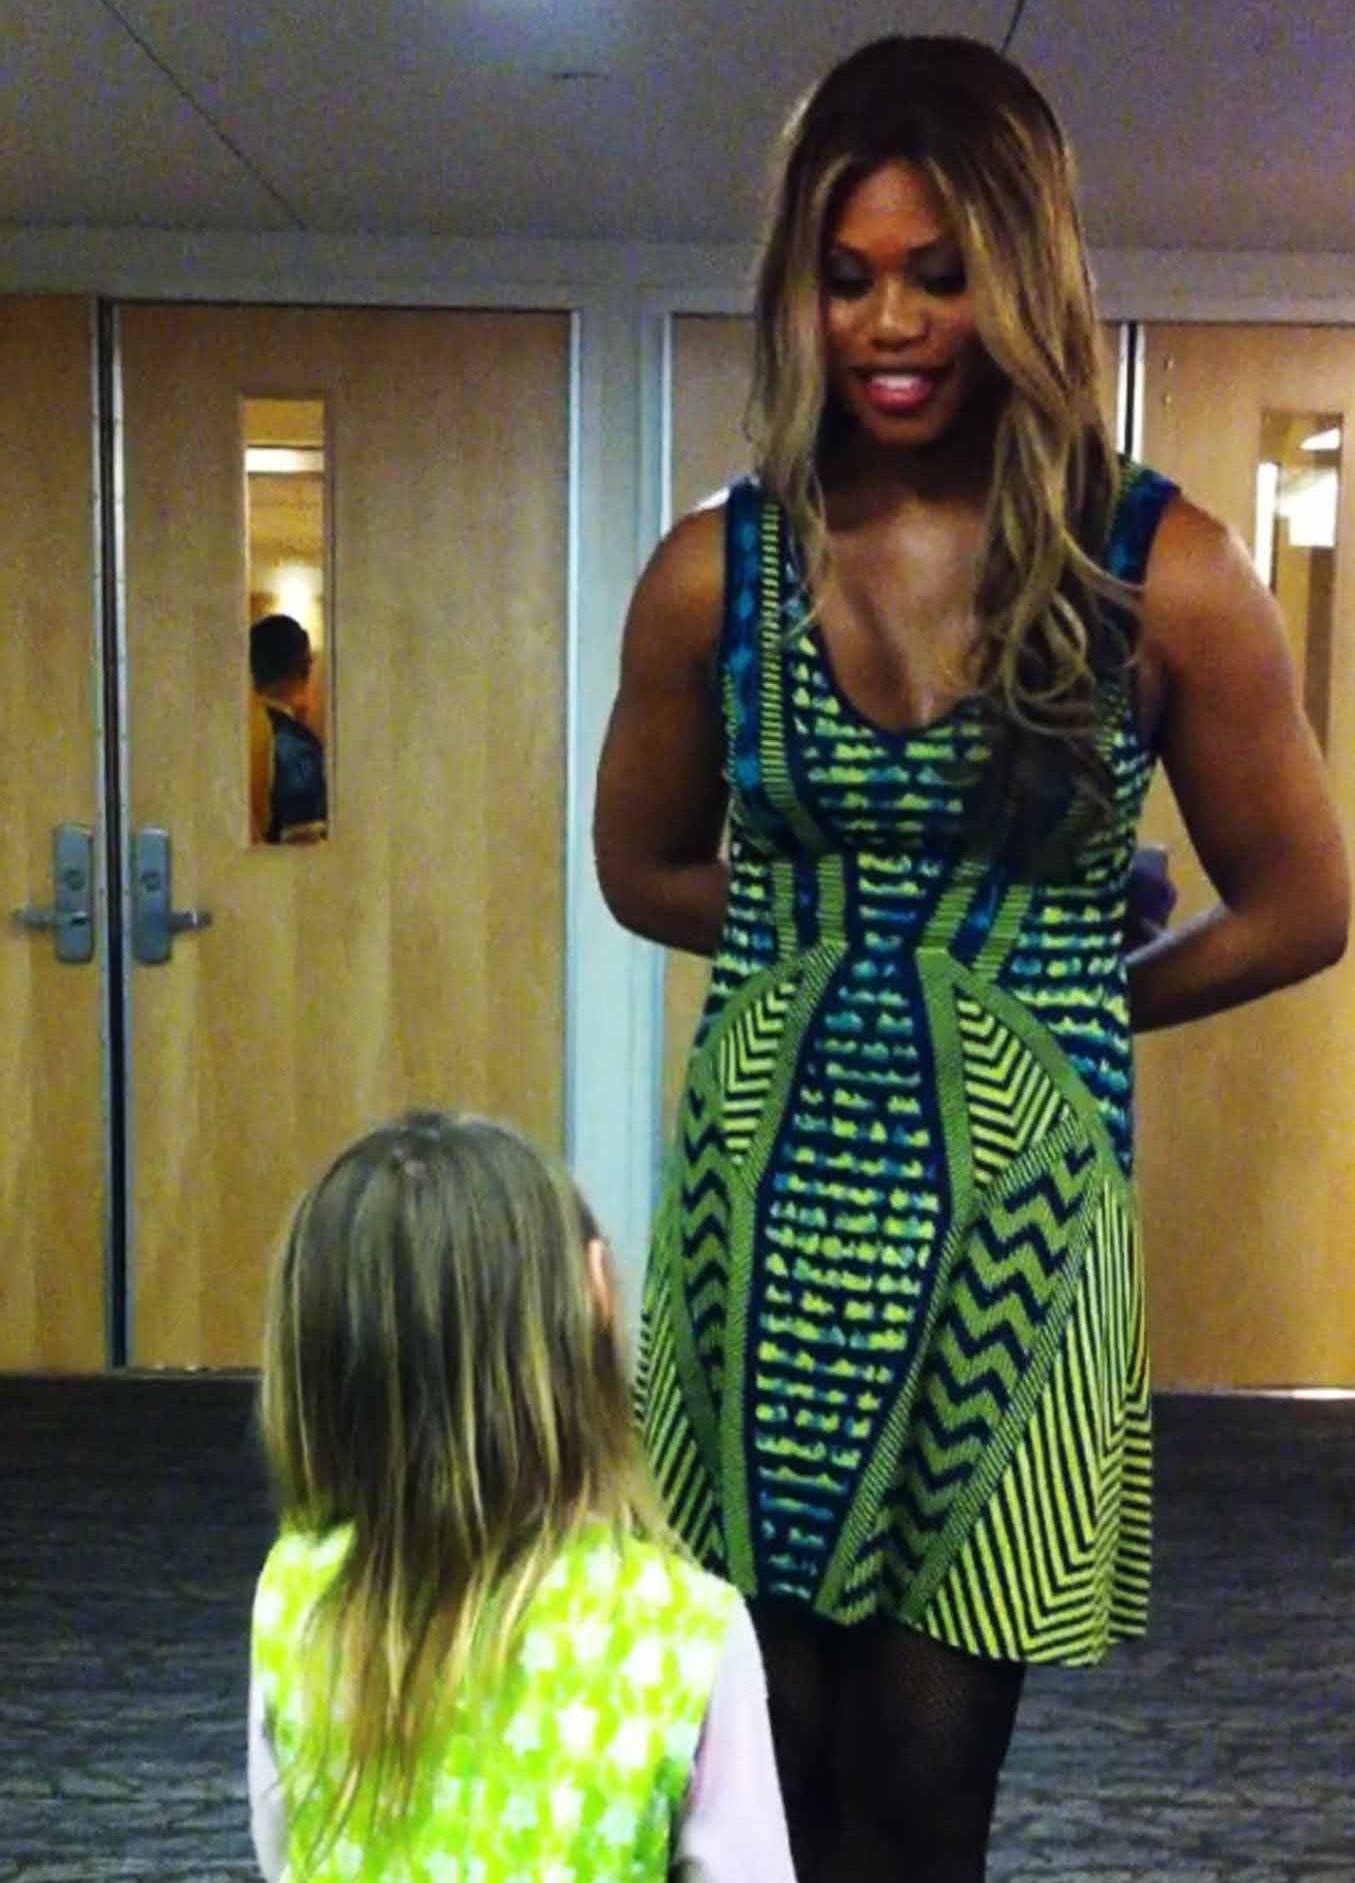 Marlo's daughter meets advocate and actress Laverne Cox.